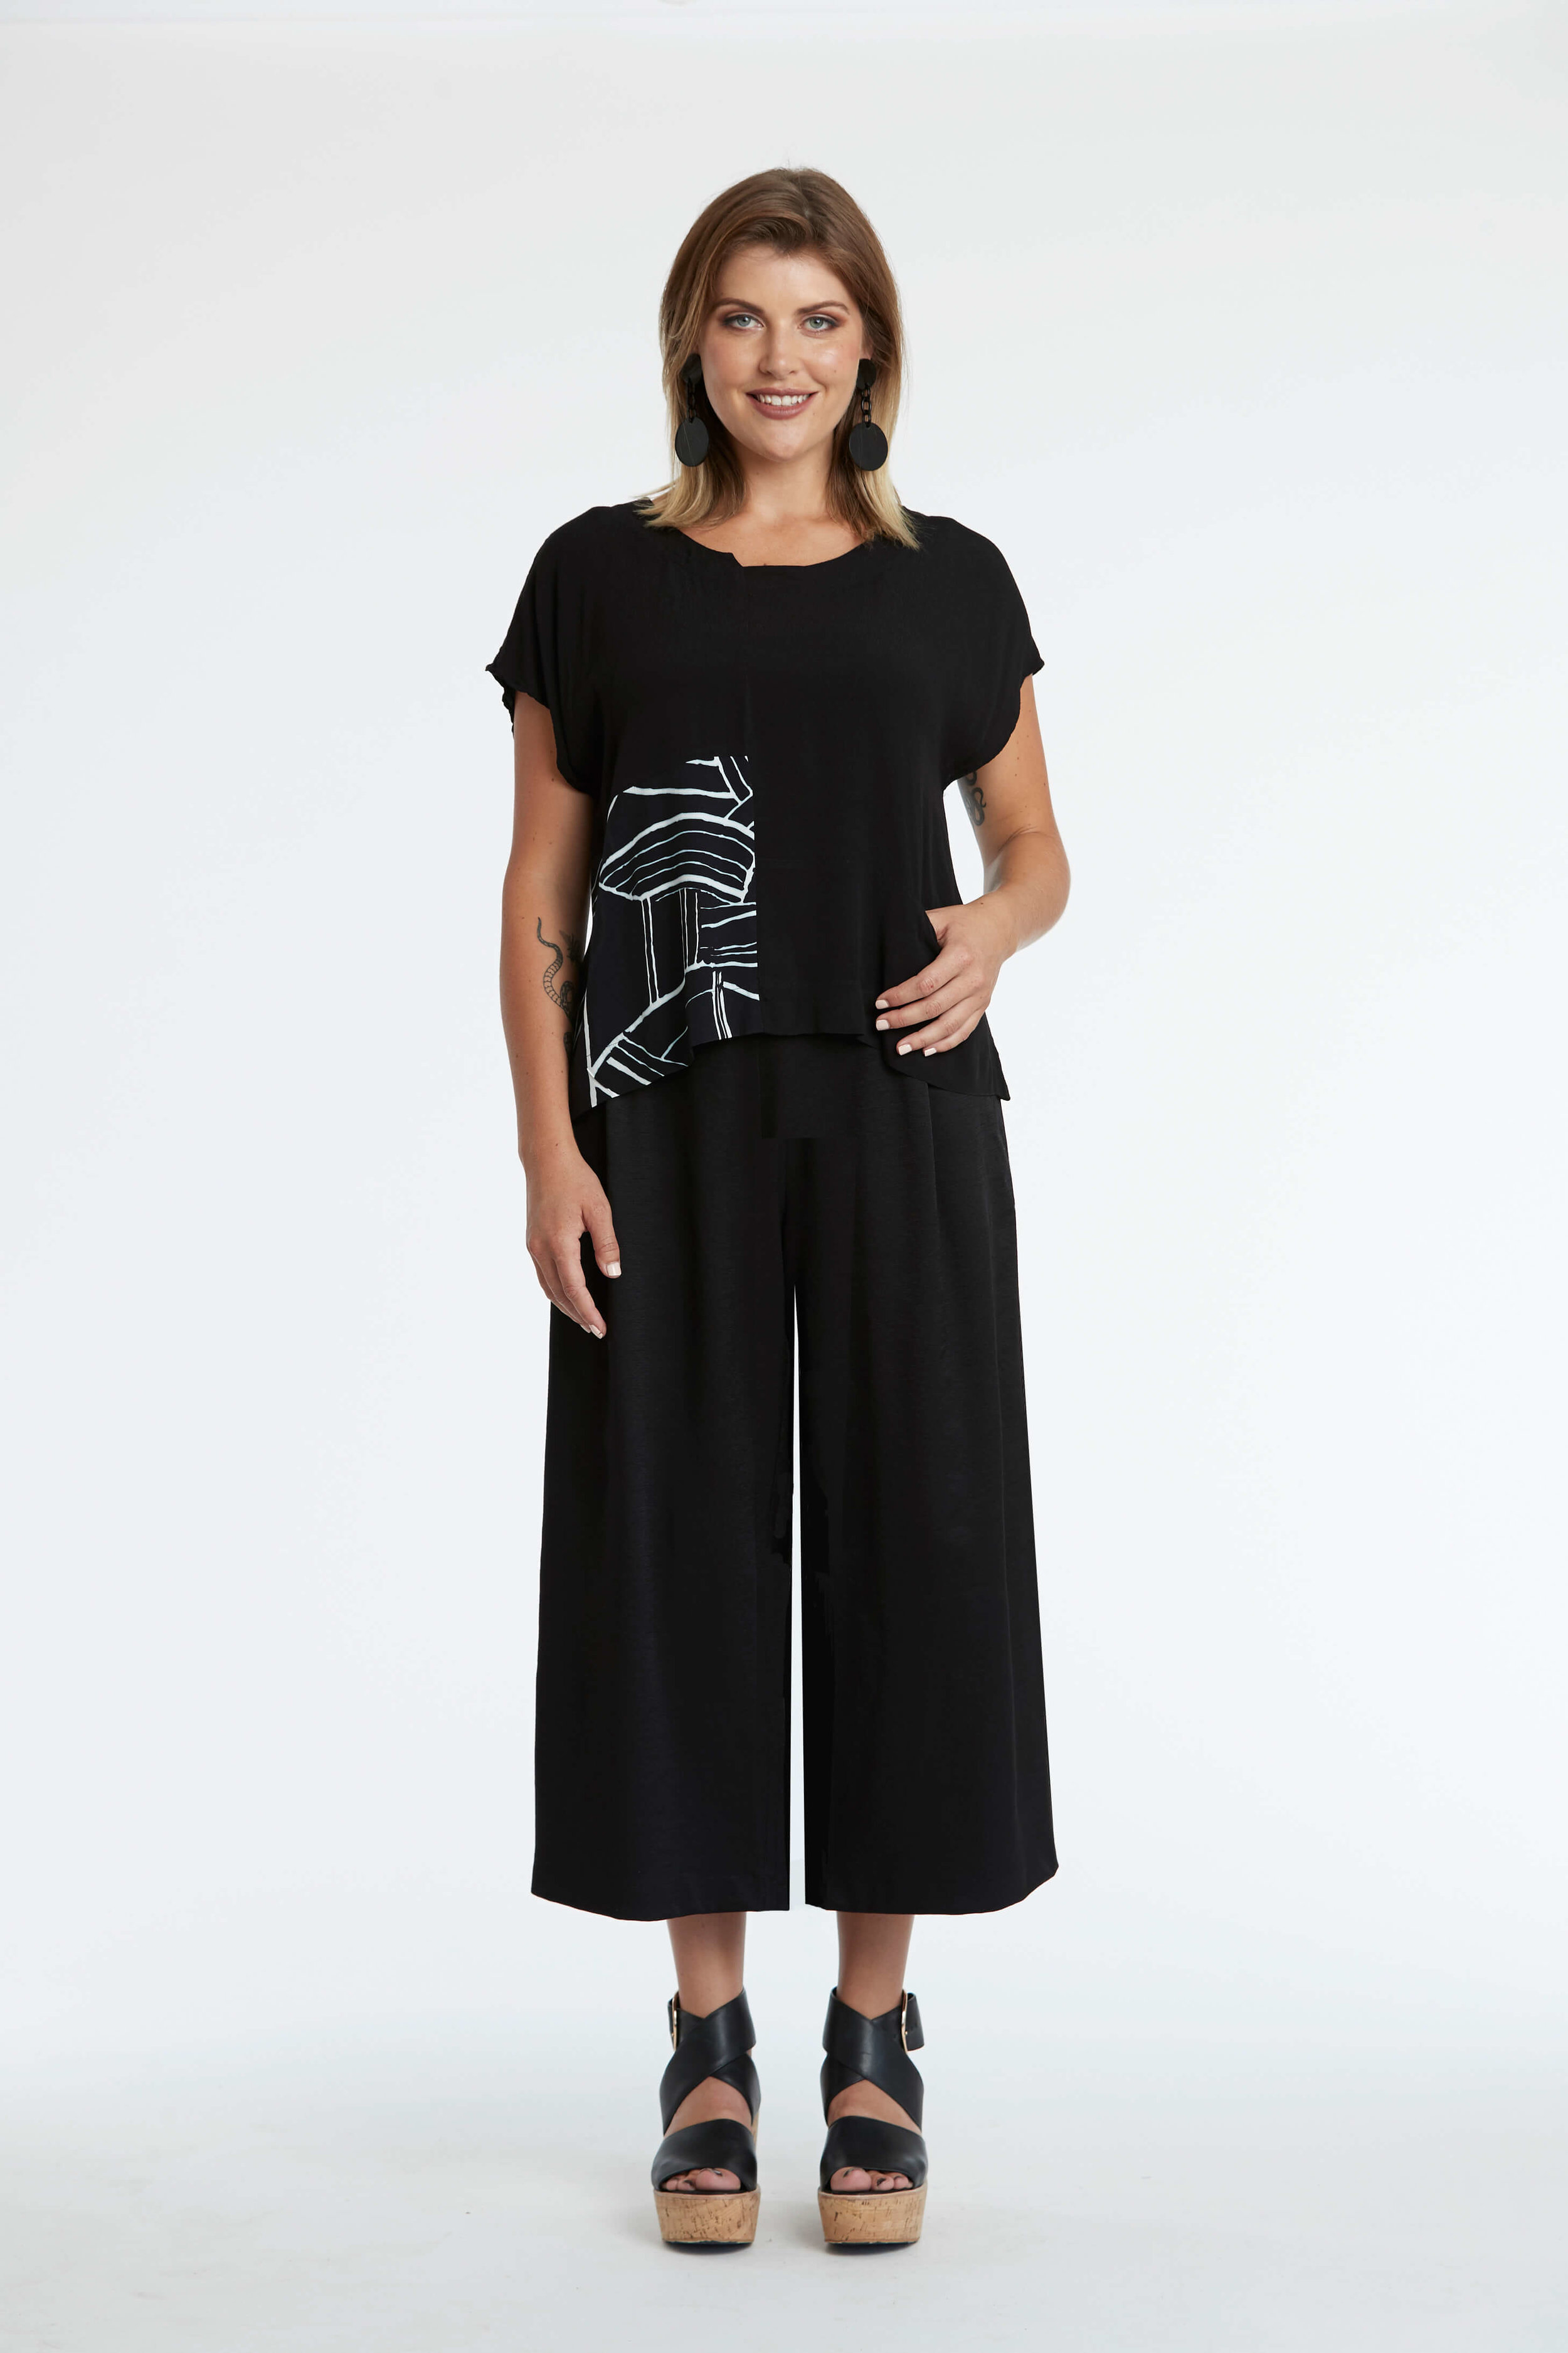 73231 Arcadia Spliced Top, 73247 San Francisco Capone Culottes.jpg